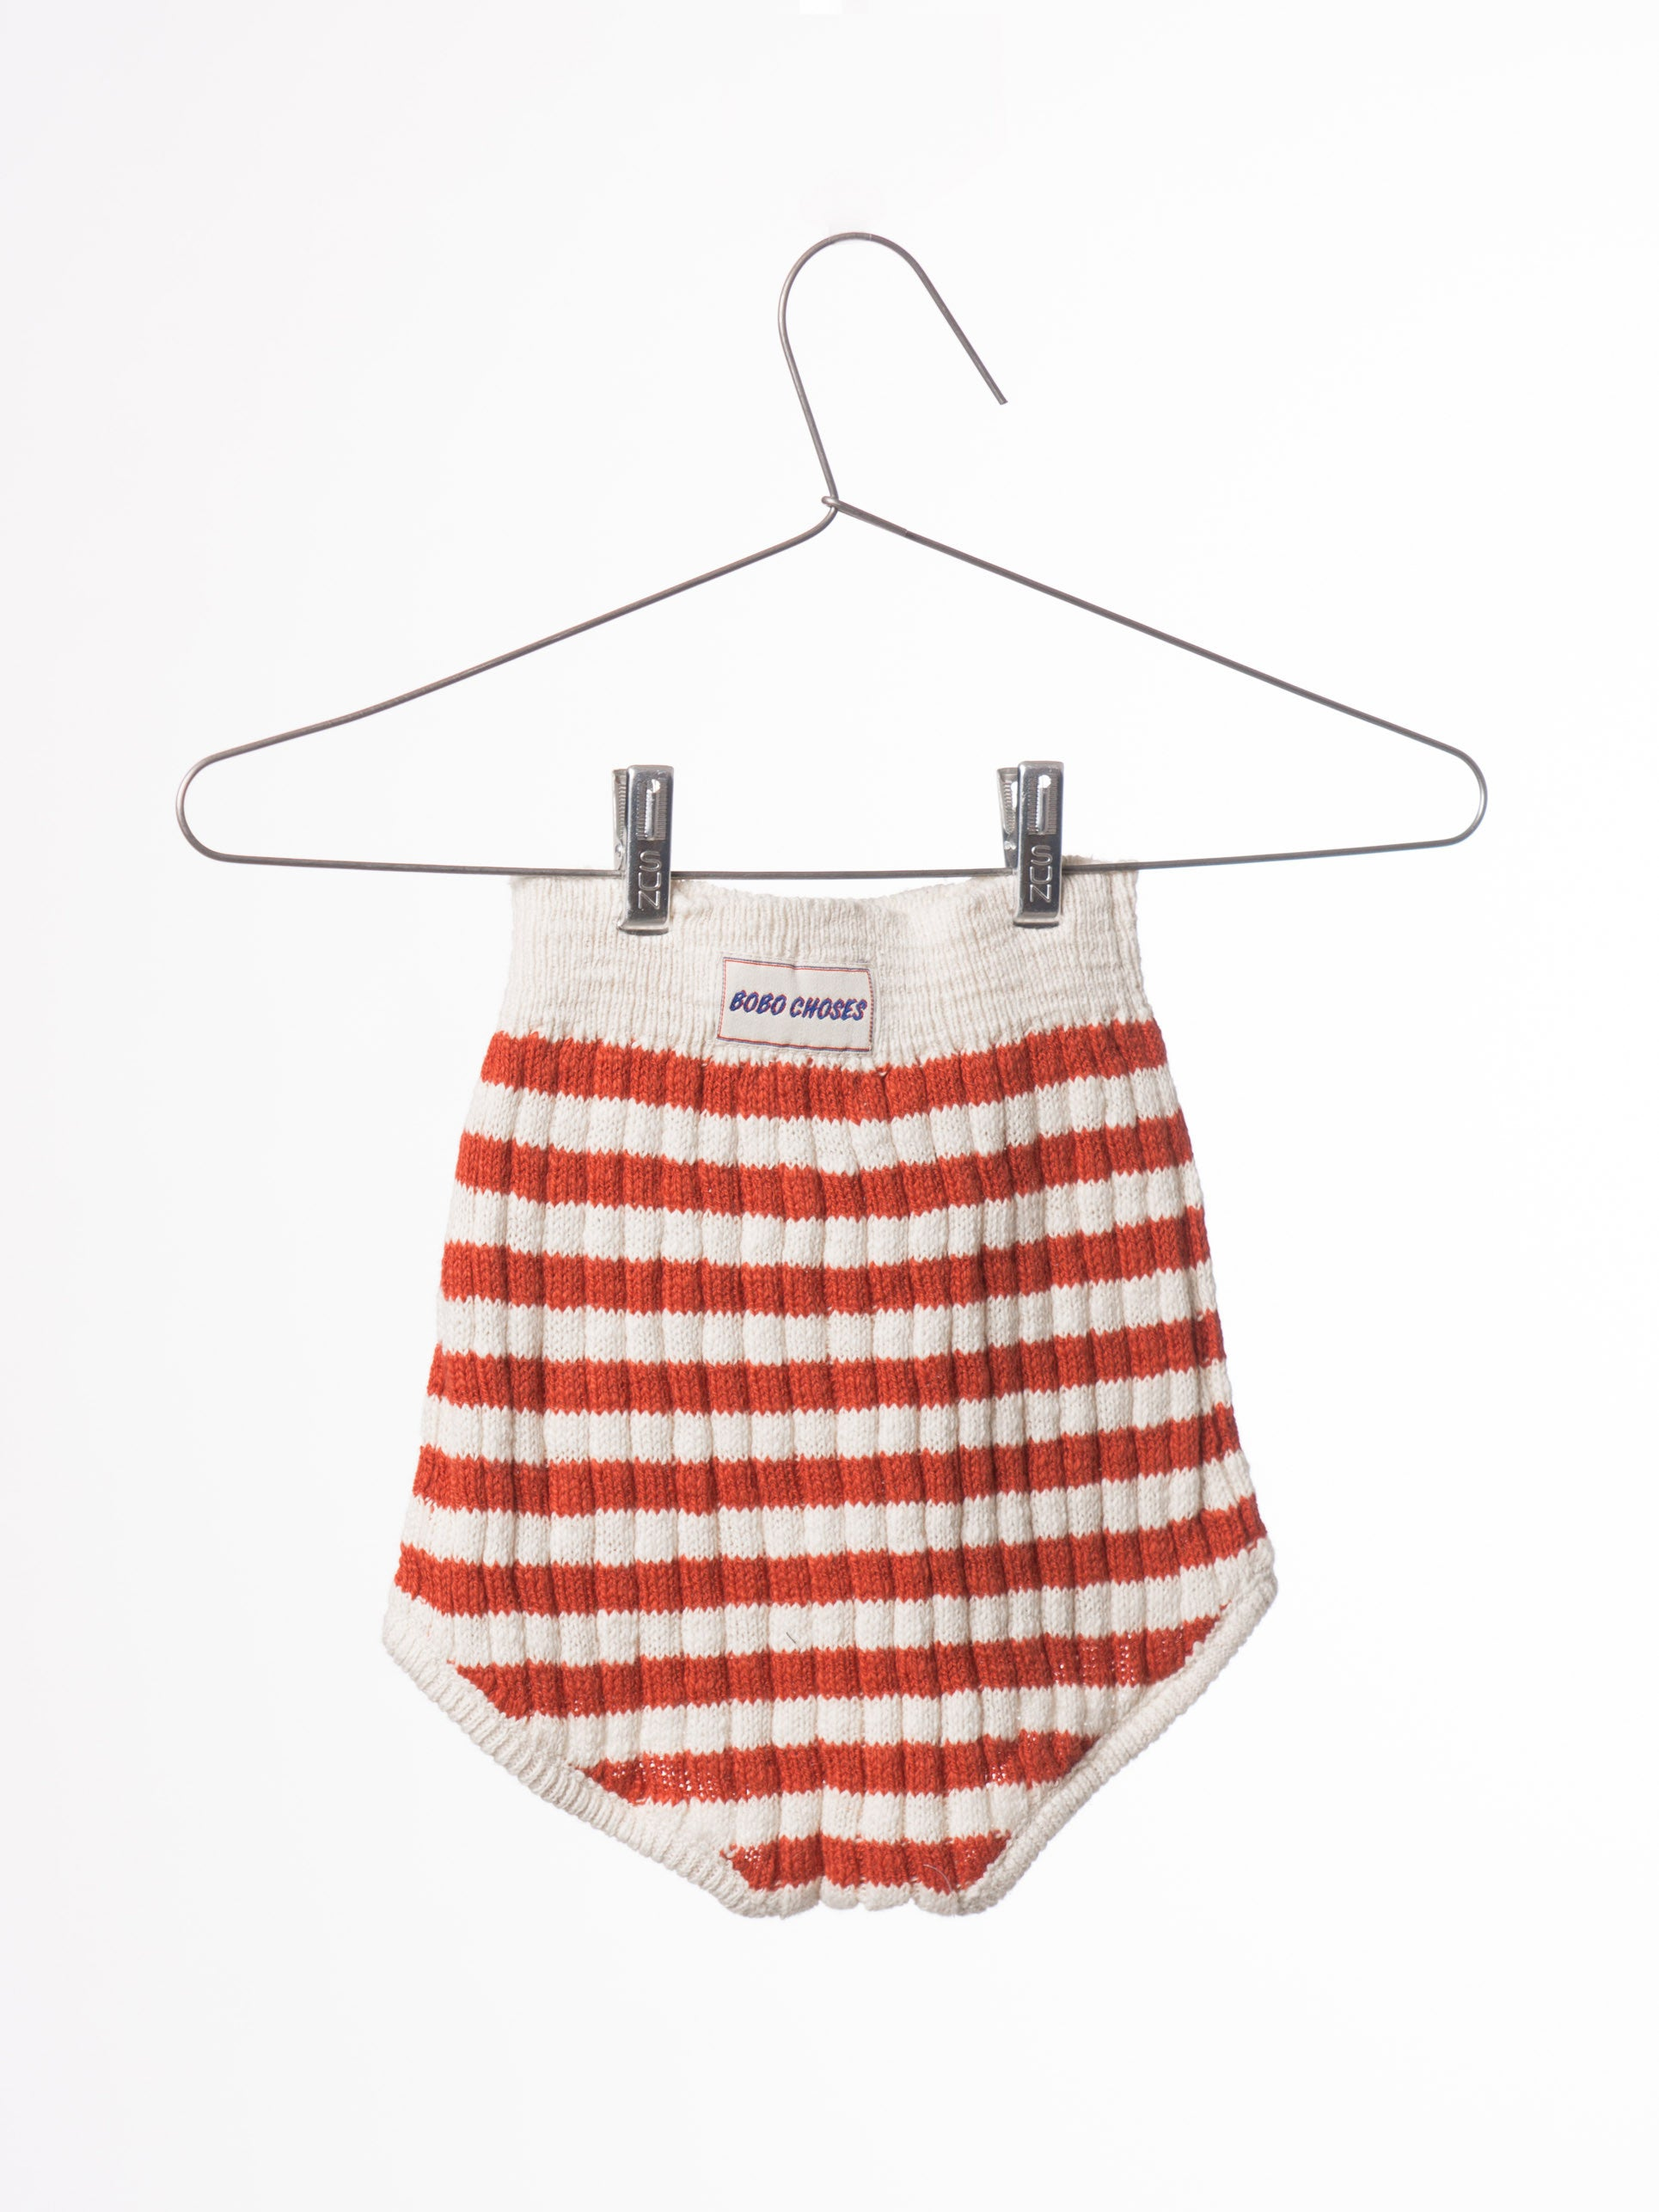 Bobo Choses Red Knitted Culotte - Ladida